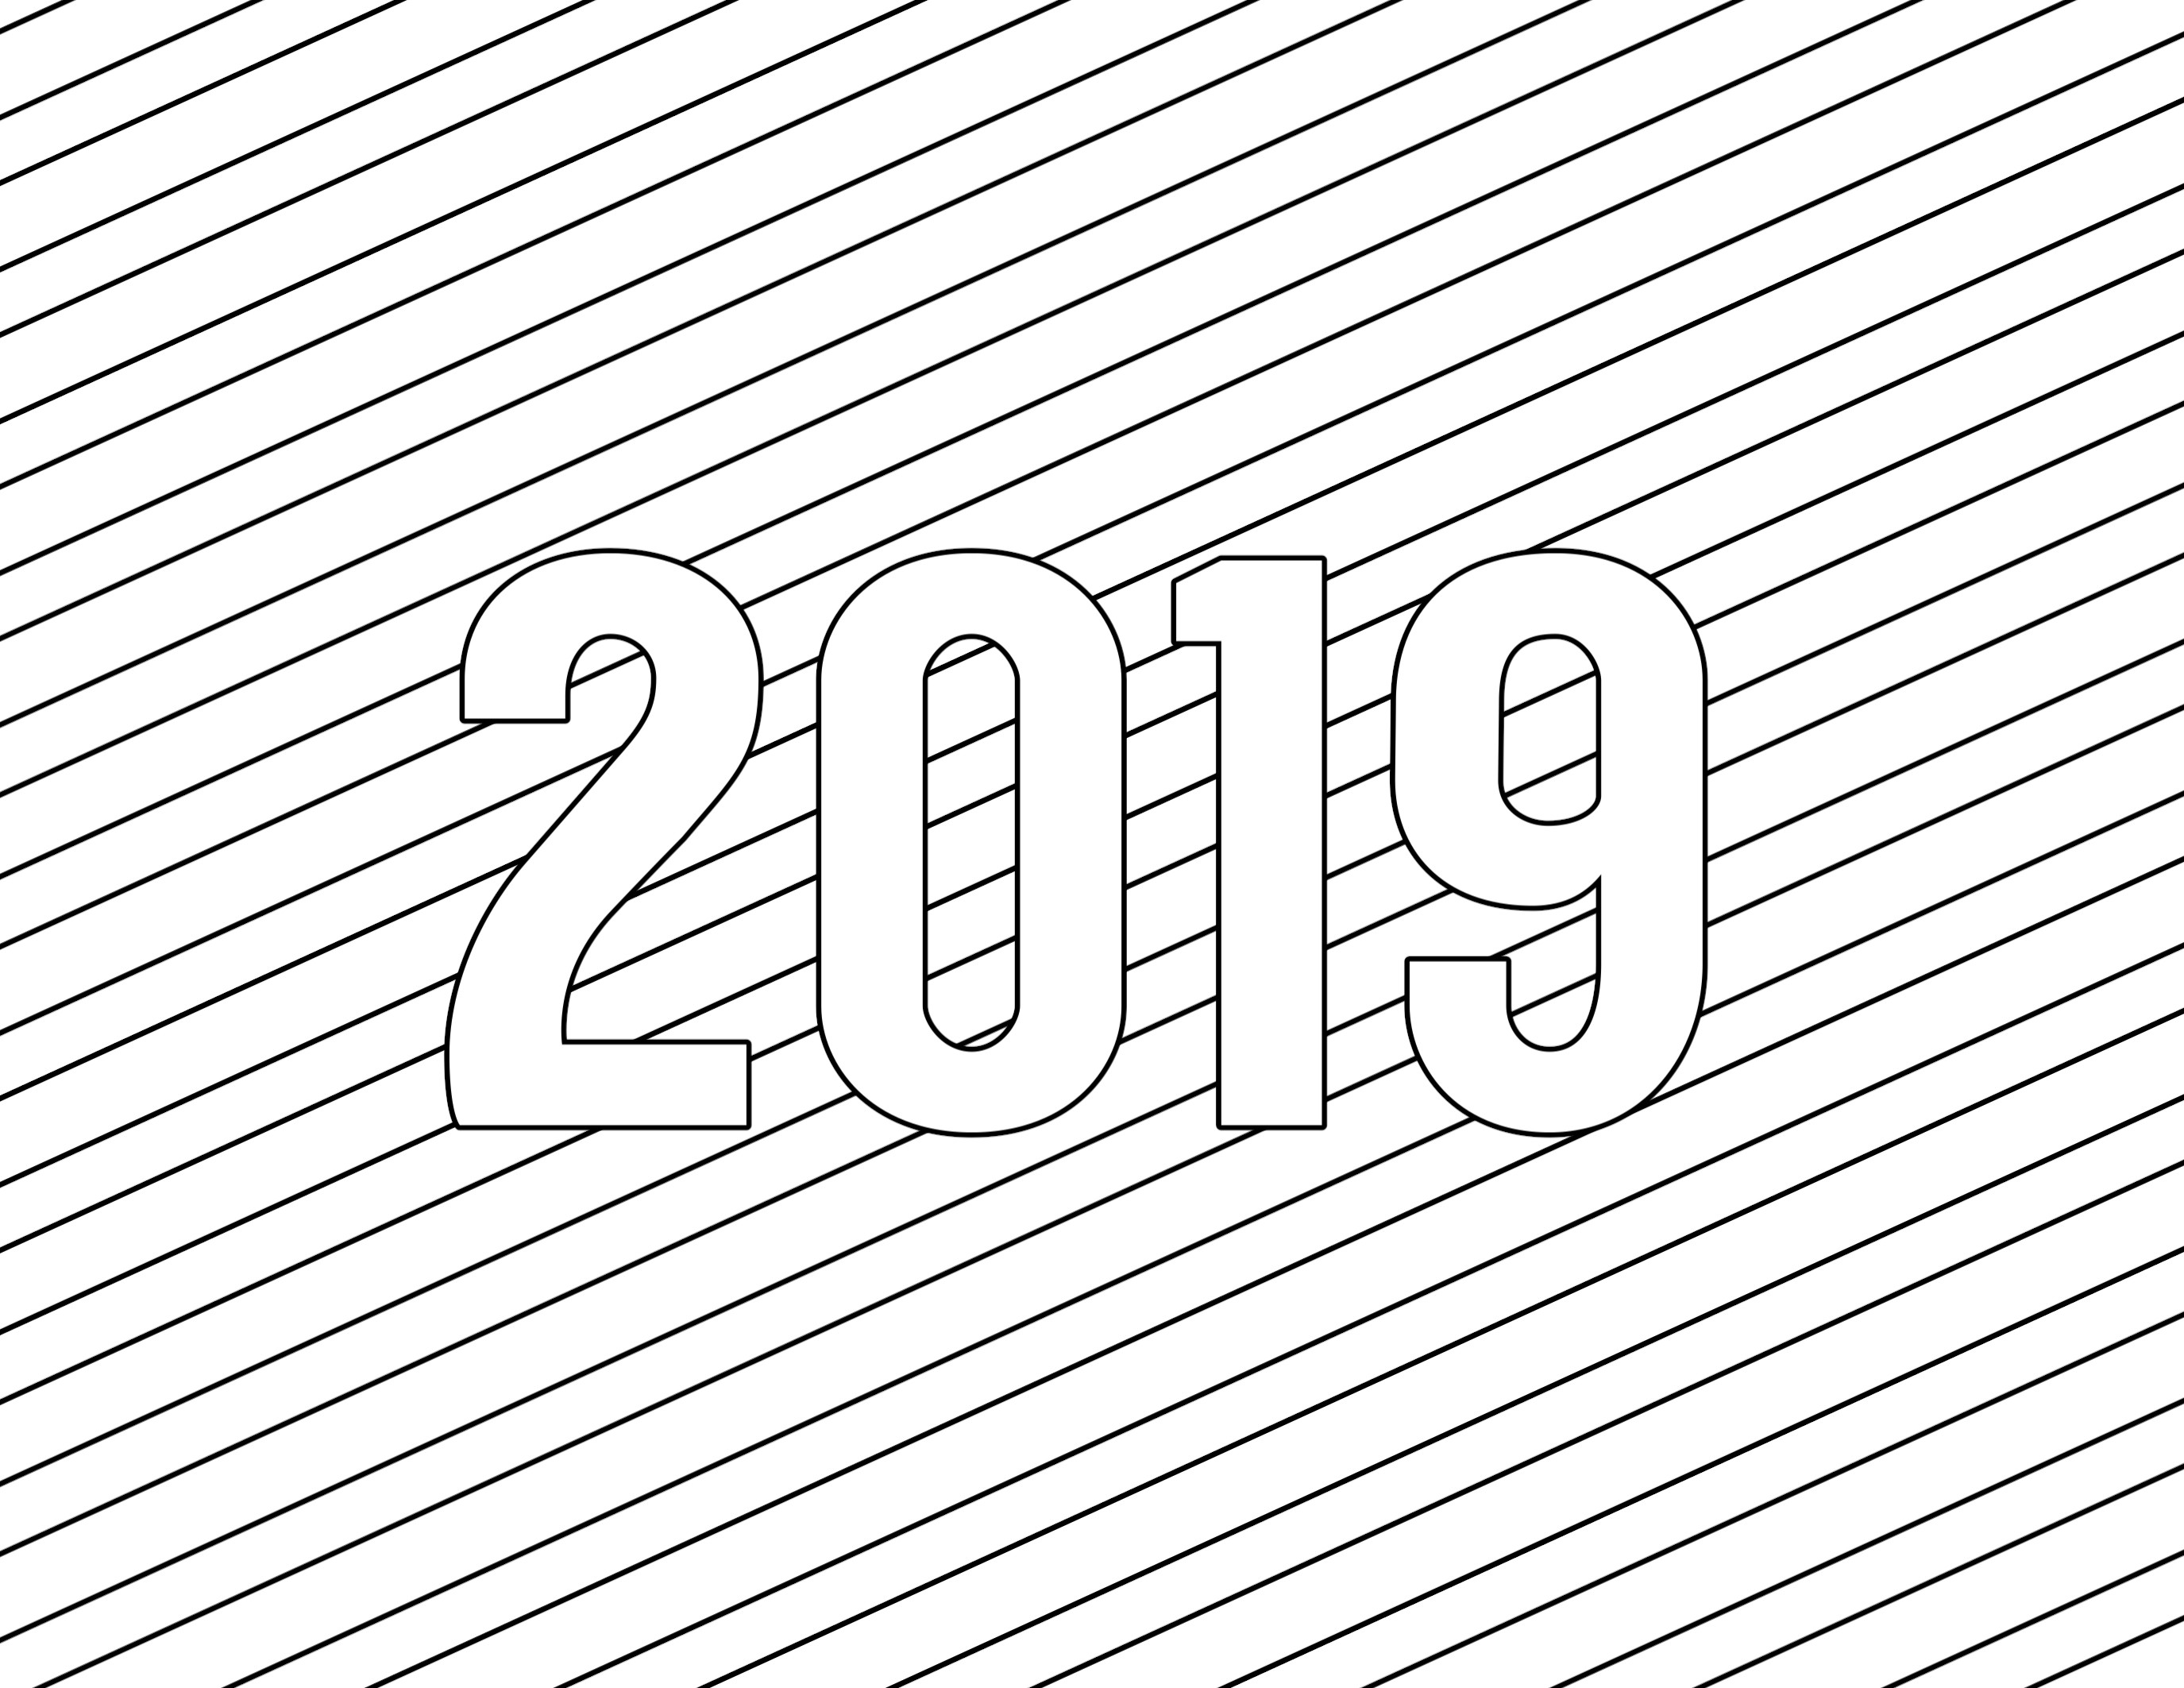 2019 Coloring Pages For Kids  Happy New Year Coloring Pages Free Printable Paper Trail